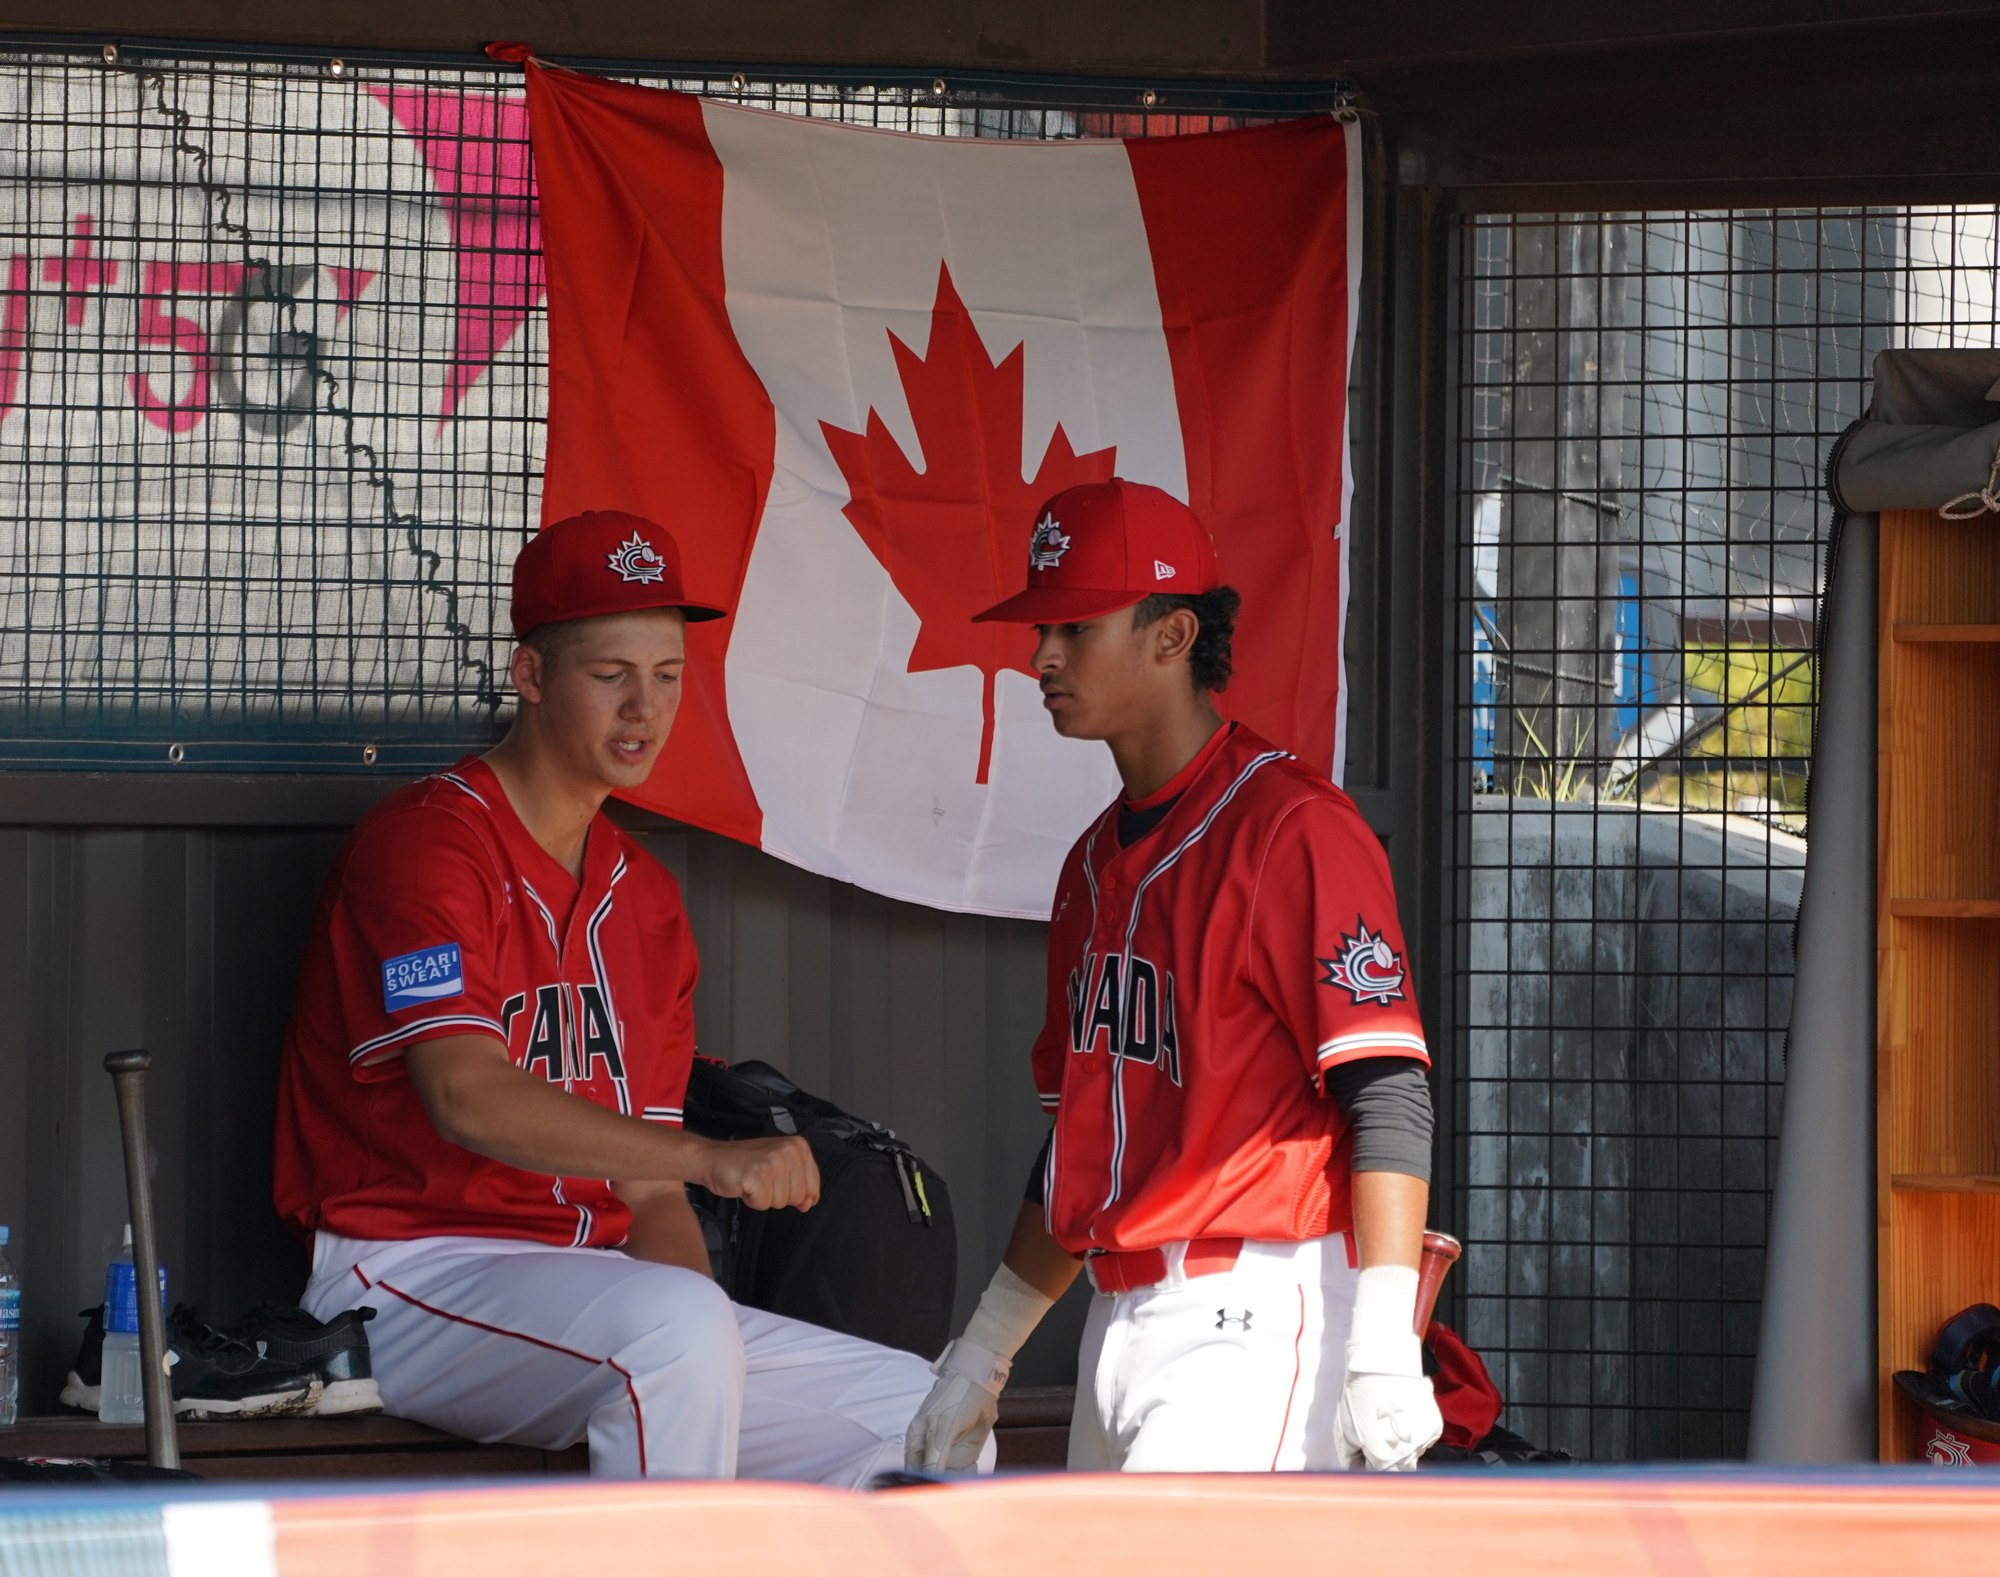 Canada's starting pitcher Mitchell Bratt during pre game